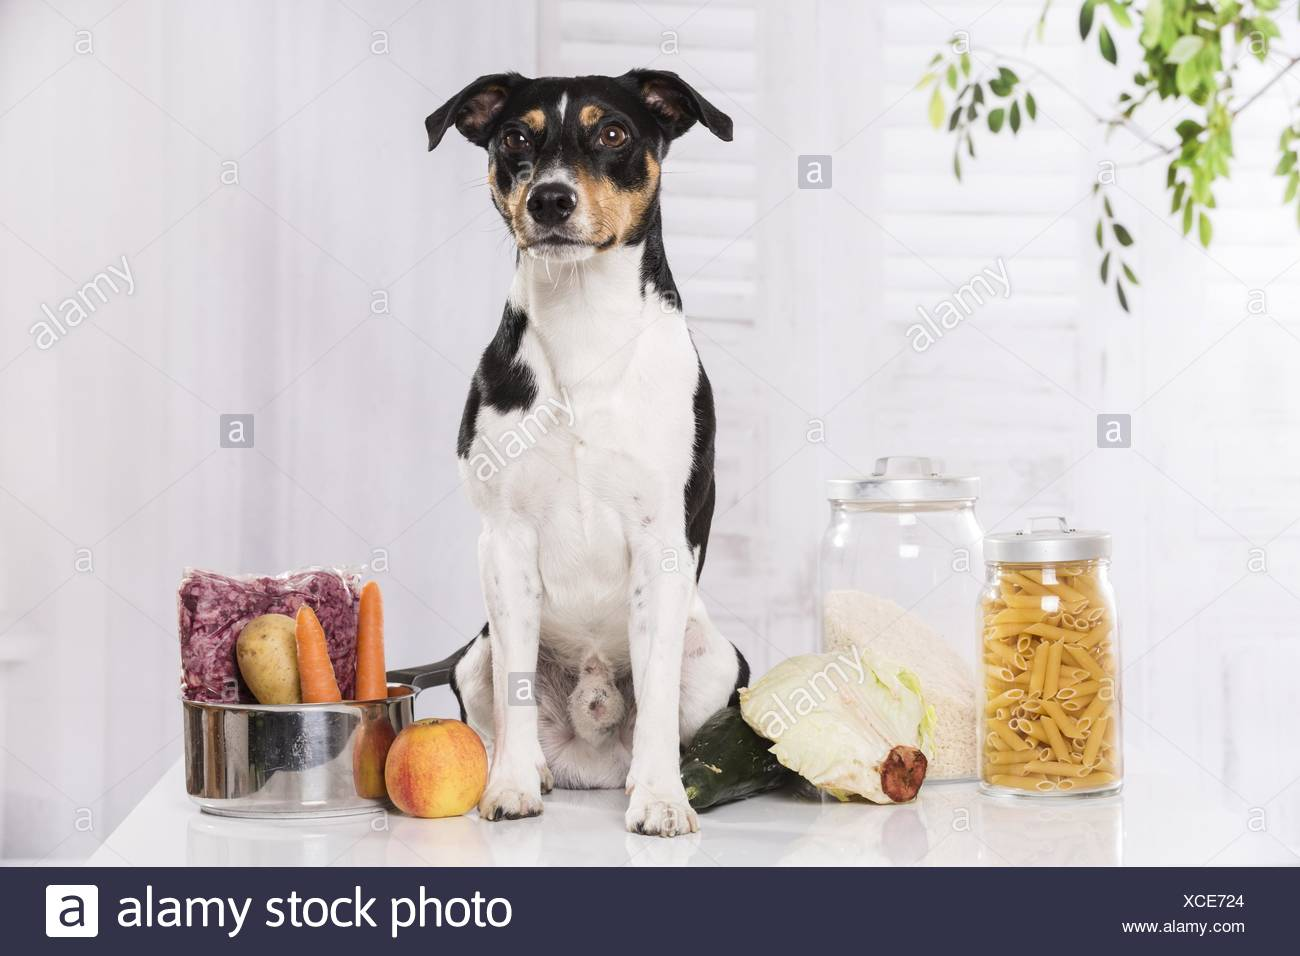 Jack Russell Terrier with food - Stock Image